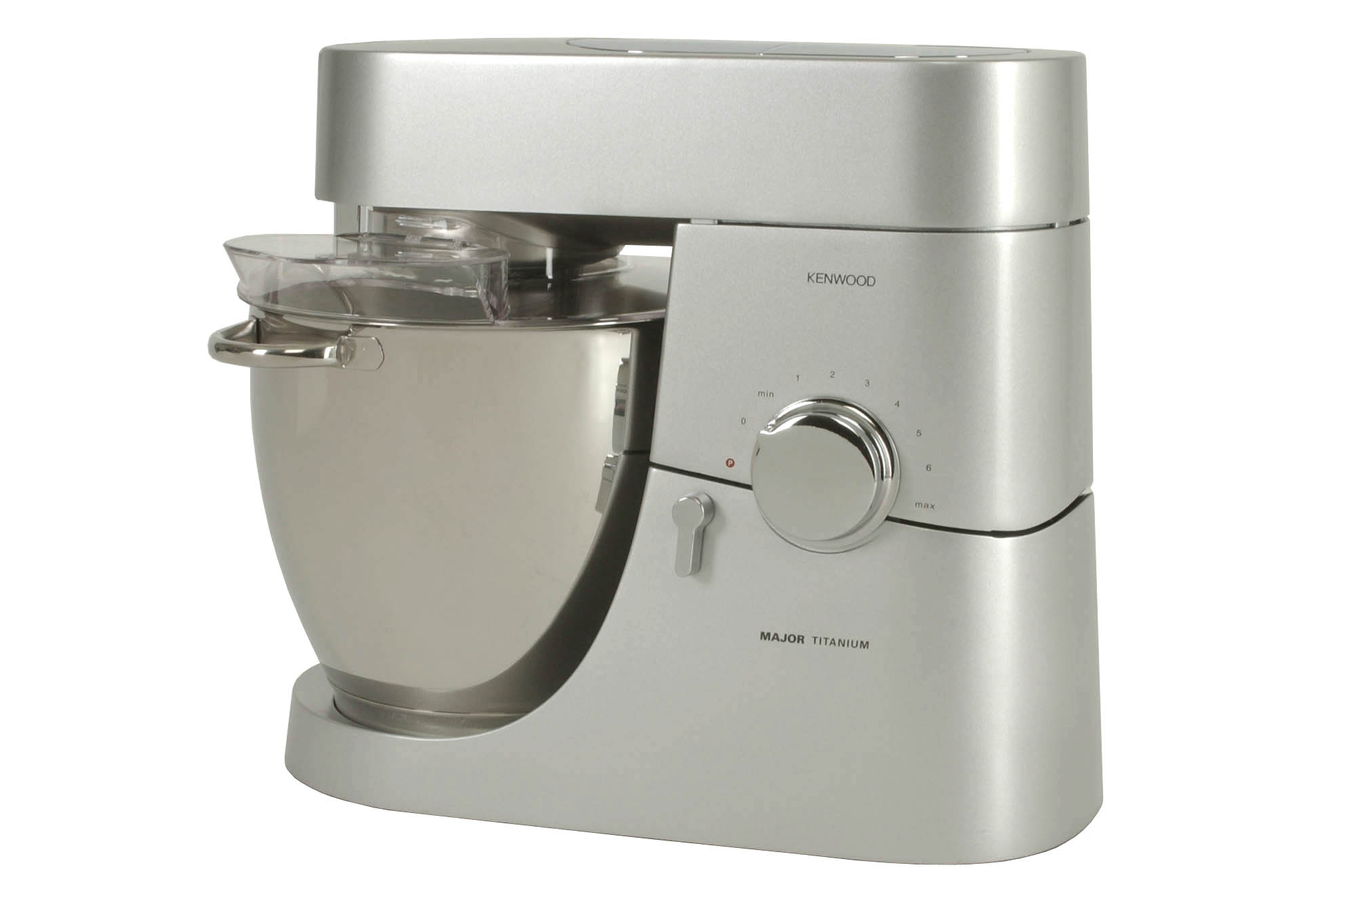 Robot patissier Kenwood KM021 MAJOR TITANIUM (2528045) | Darty